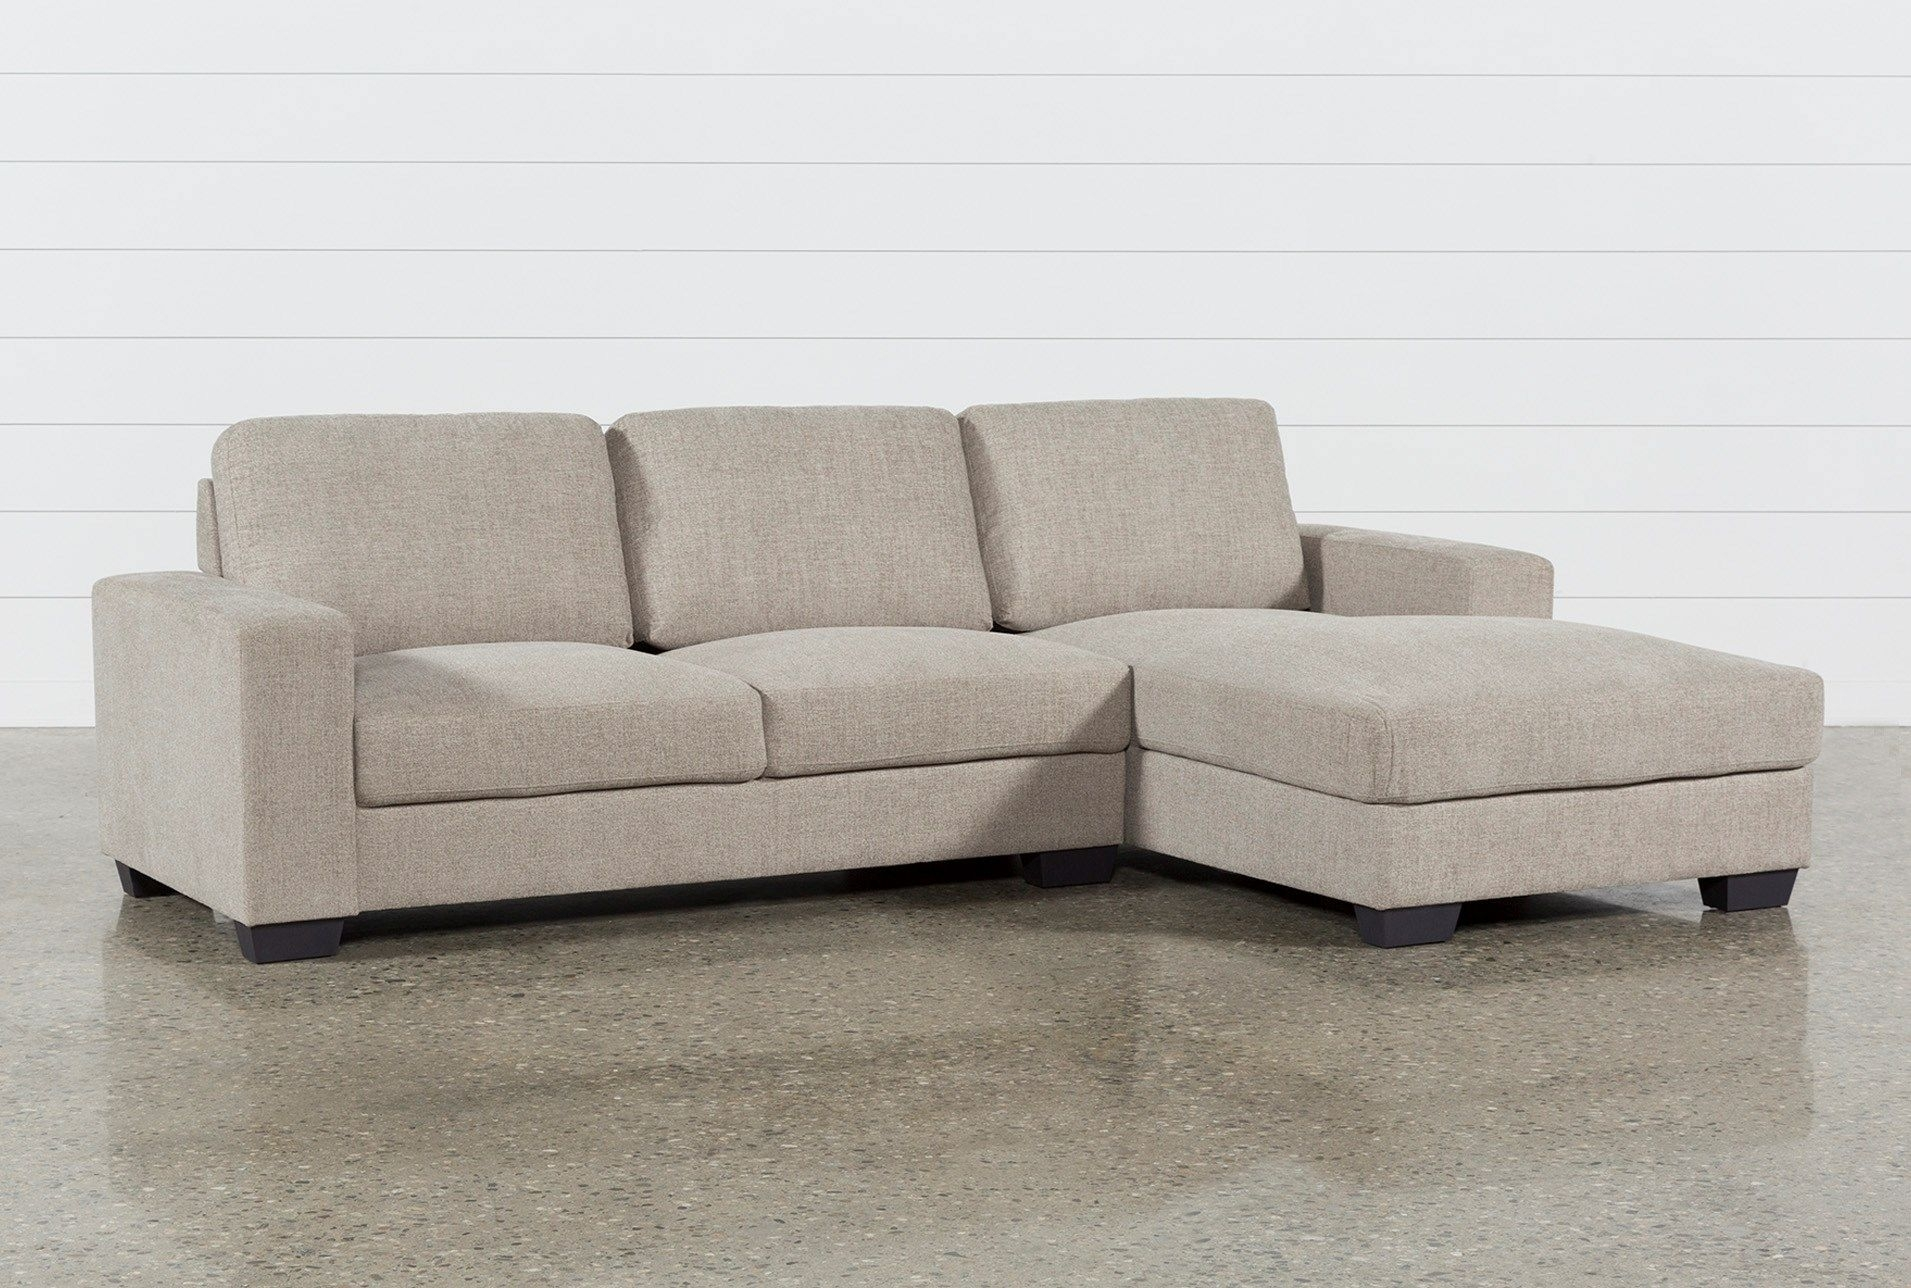 Jobs Oat 2 Piece Sectional With Right Facing Chaise In 2018 Pertaining To Arrowmask 2 Piece Sectionals With Sleeper & Right Facing Chaise (Photo 11 of 25)